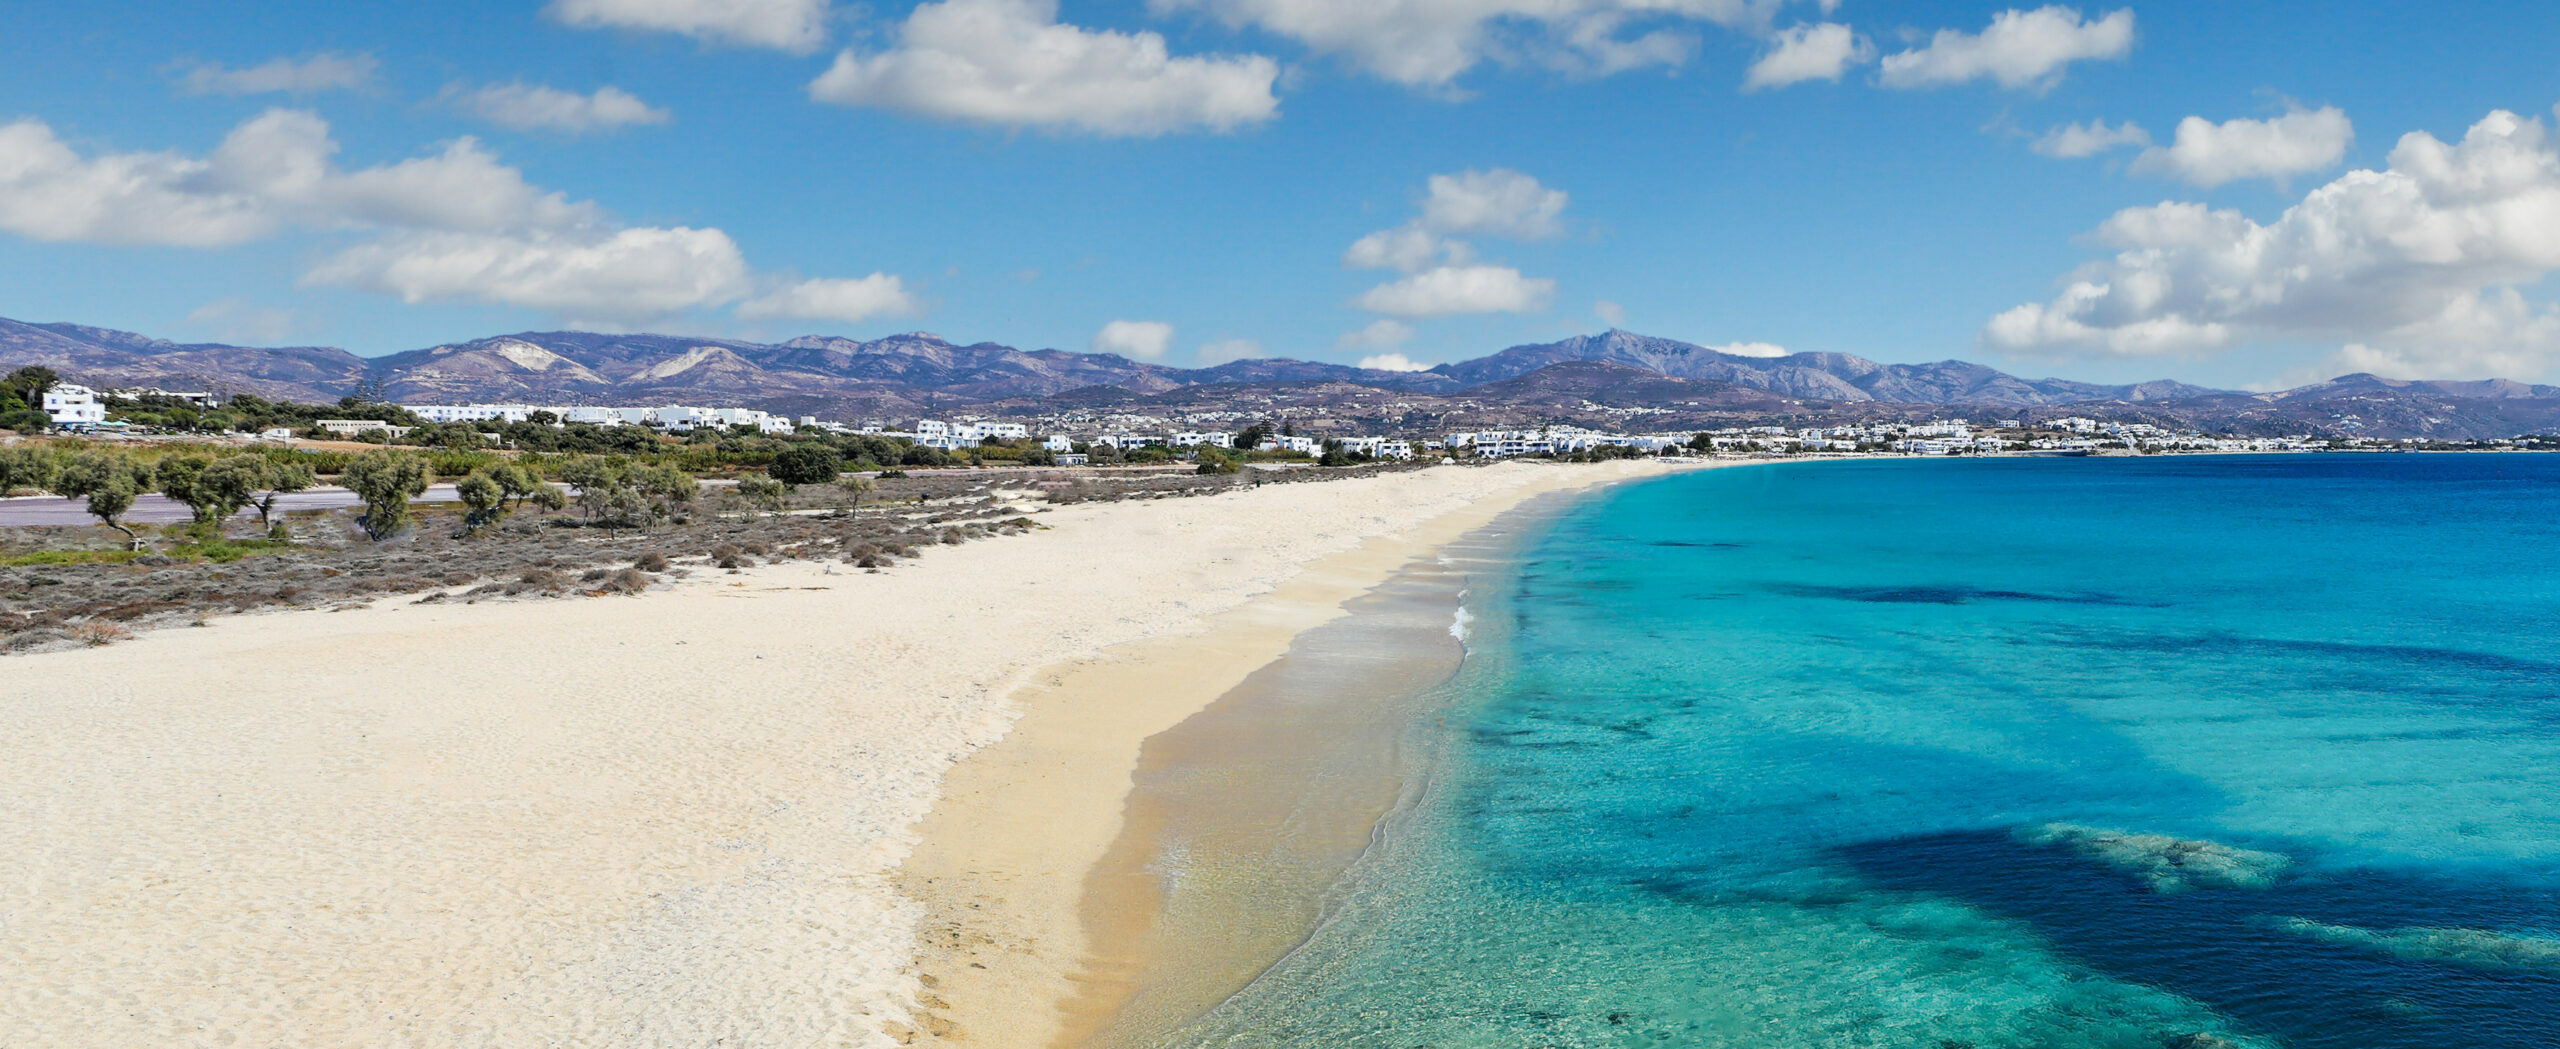 Agios Prokopios: The most famous and largest beach of Naxos